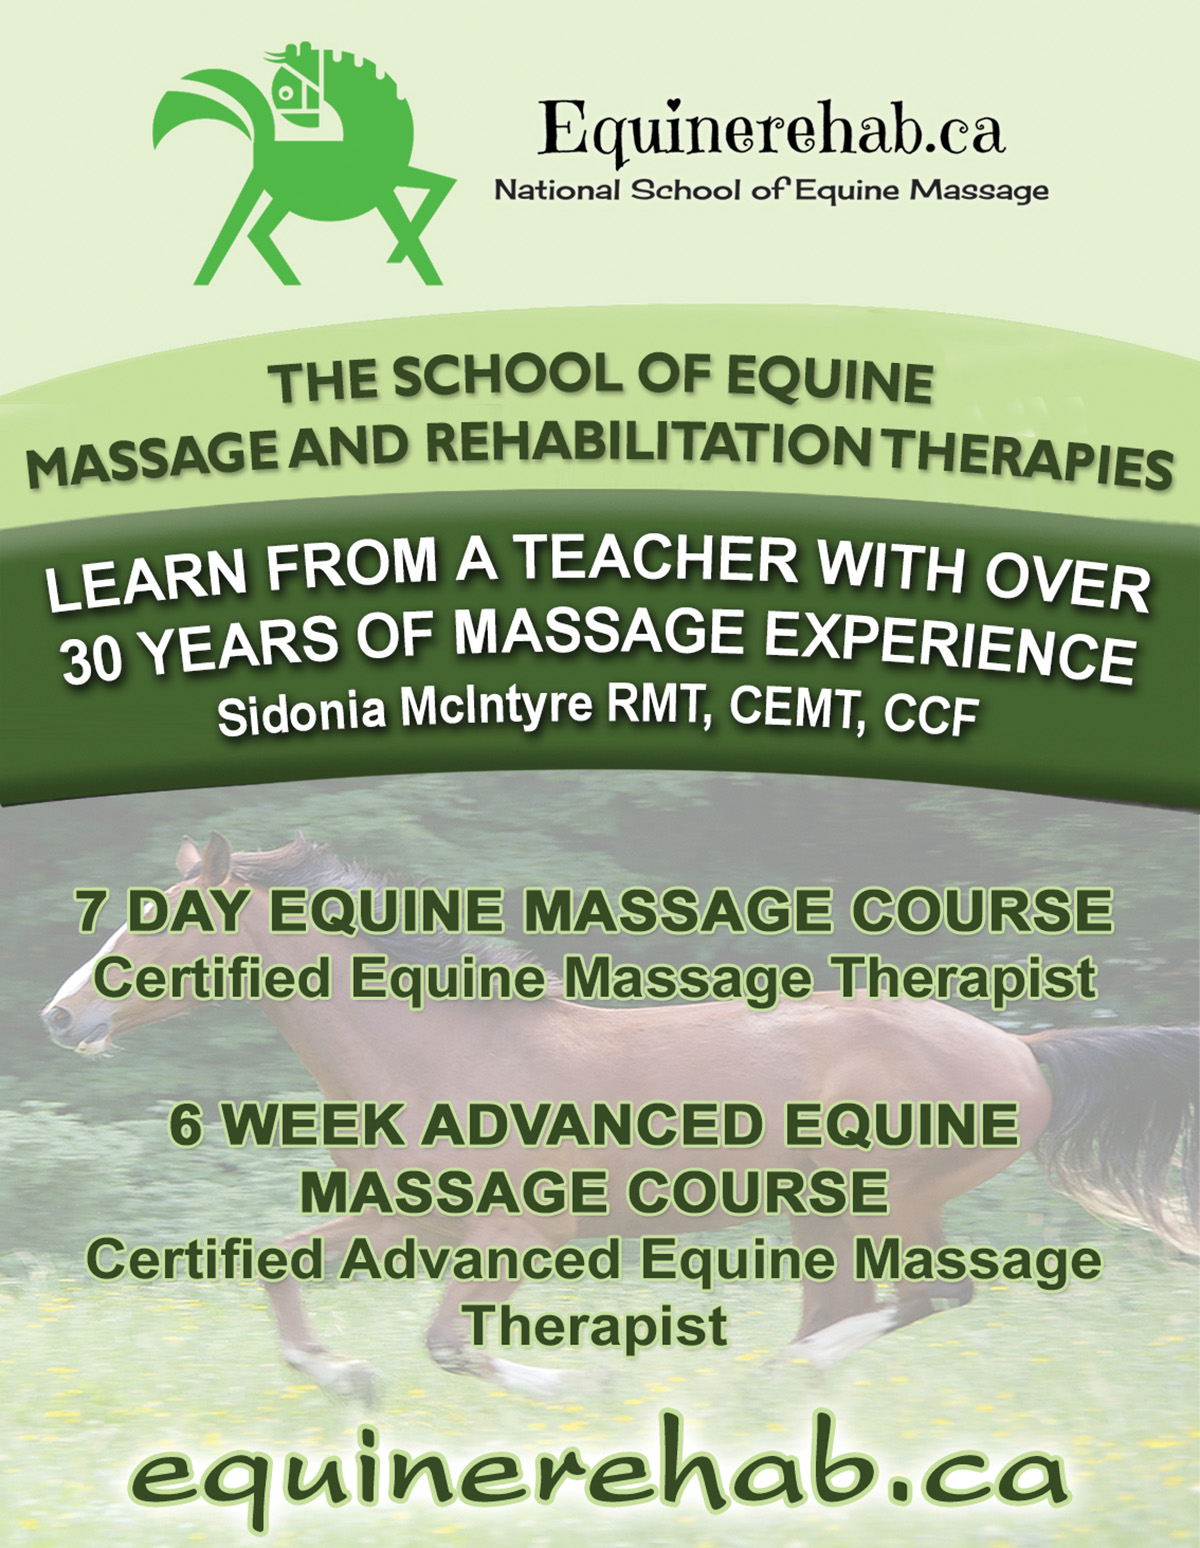 School of Equine Massage & Rehabilitation Therapies